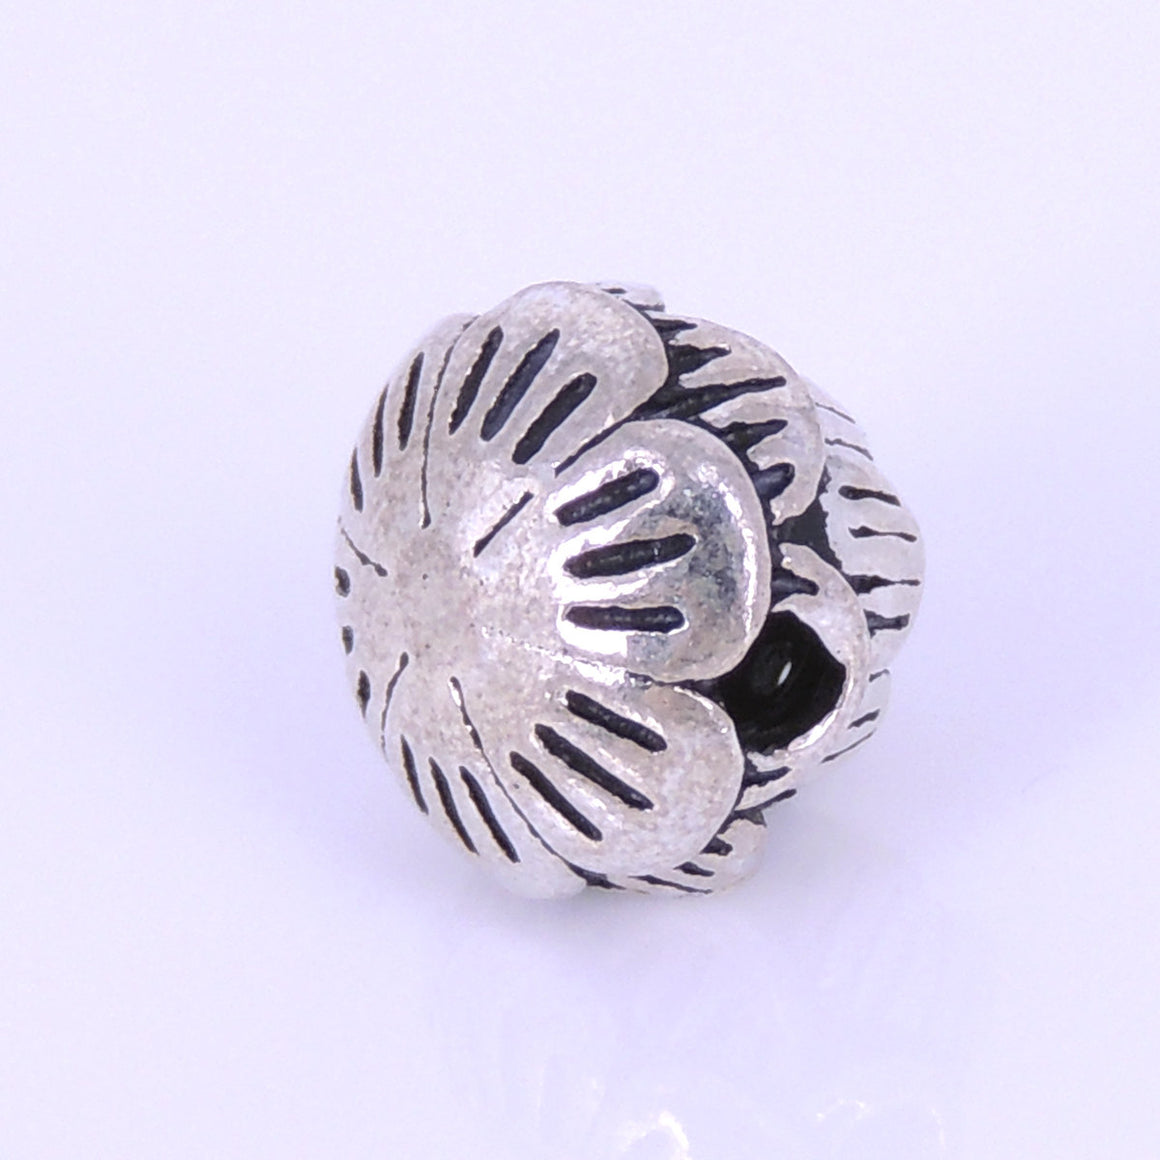 1 PC Vintage Serenity Lotus Bead - S925 Sterling Silver WSP288X1